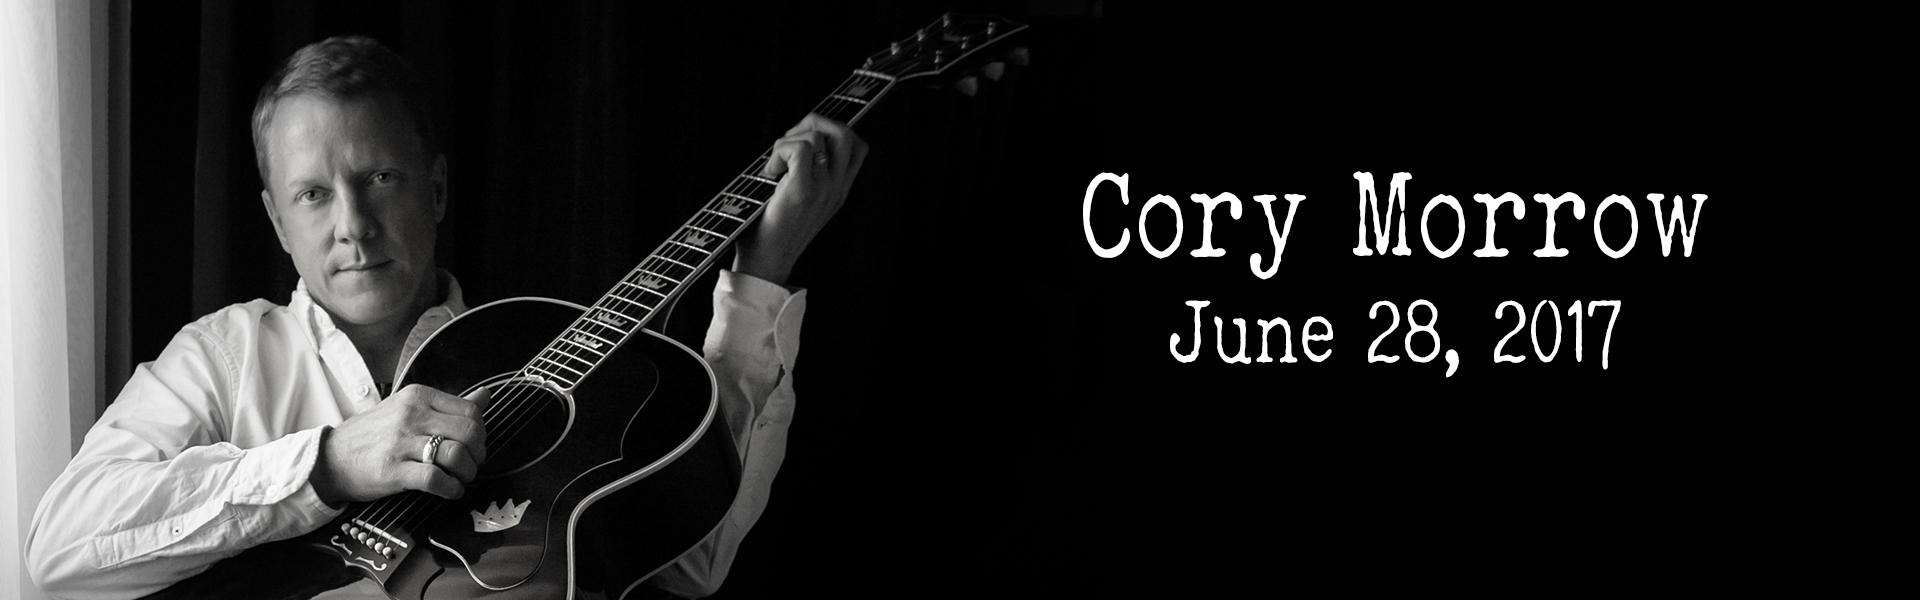 Cory-Morrow-Banner-Project